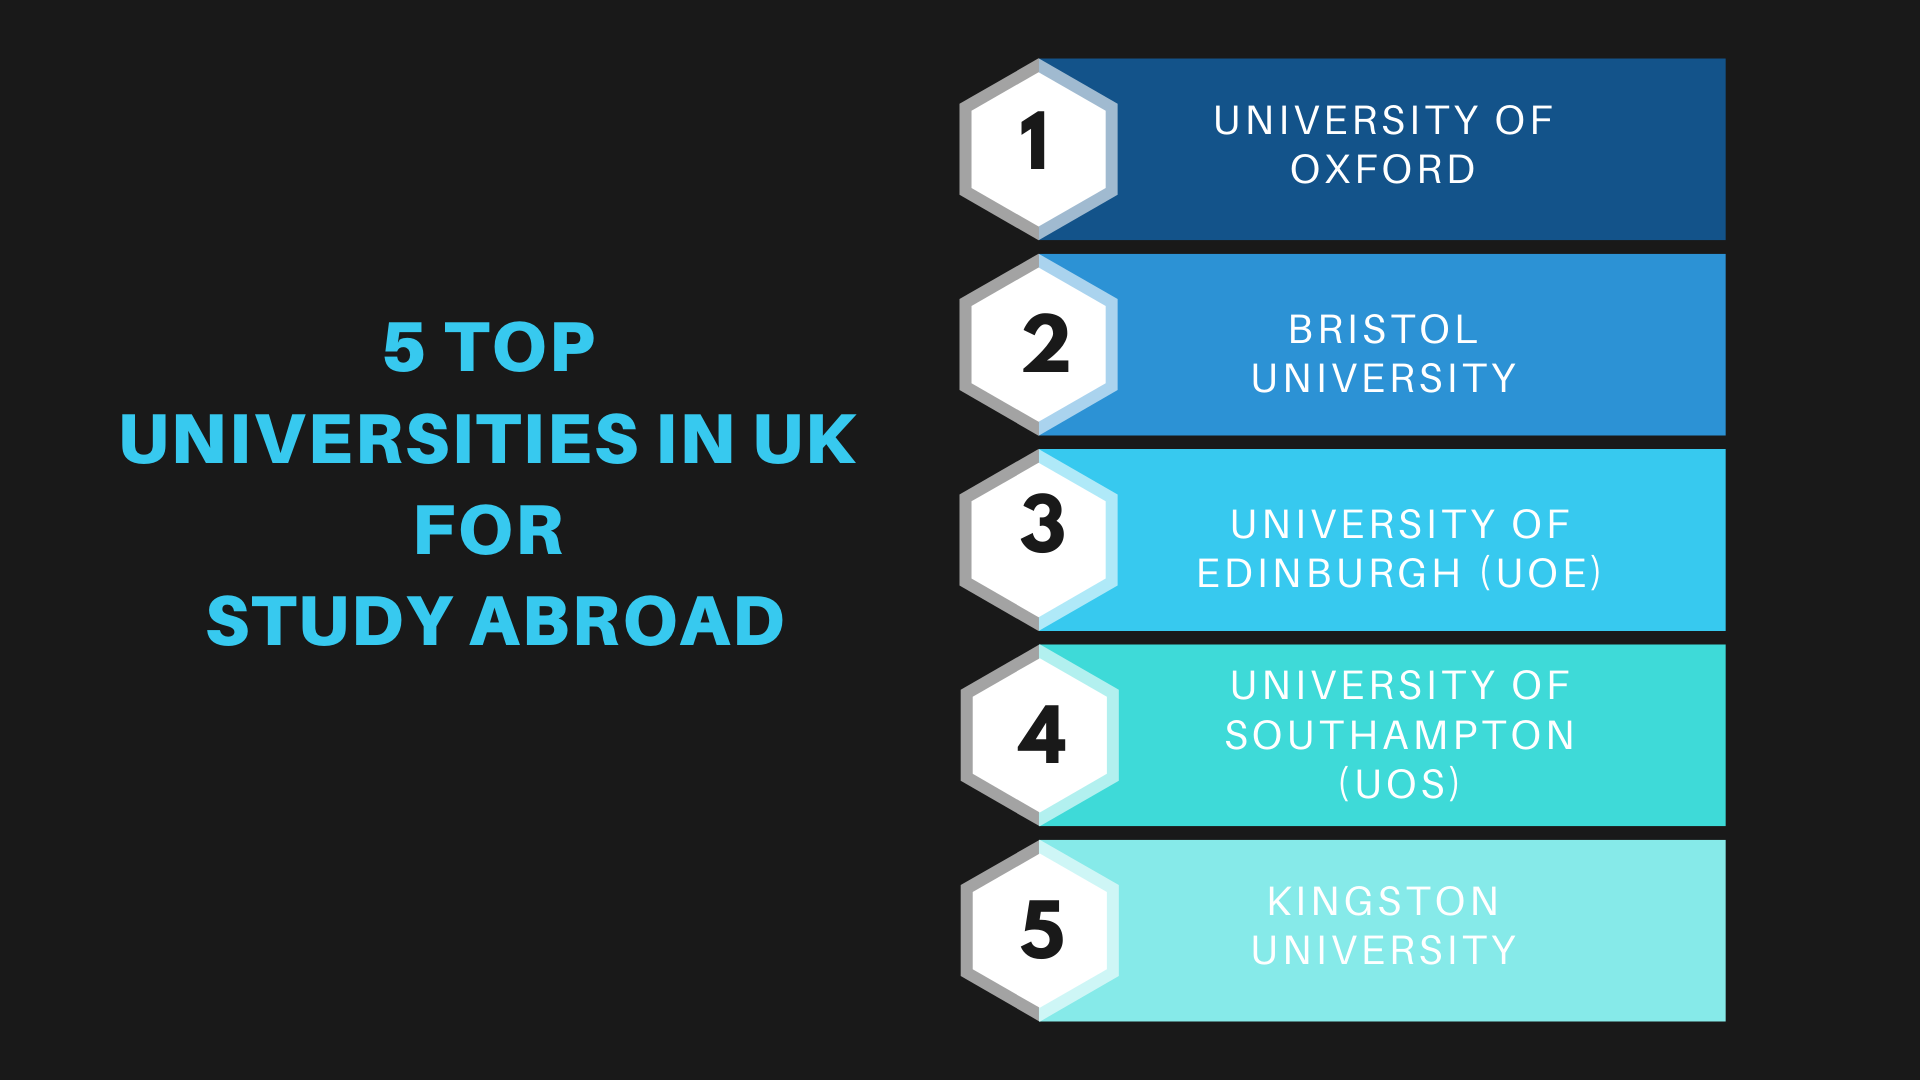 5 Top Universities in UK for Study Abroad